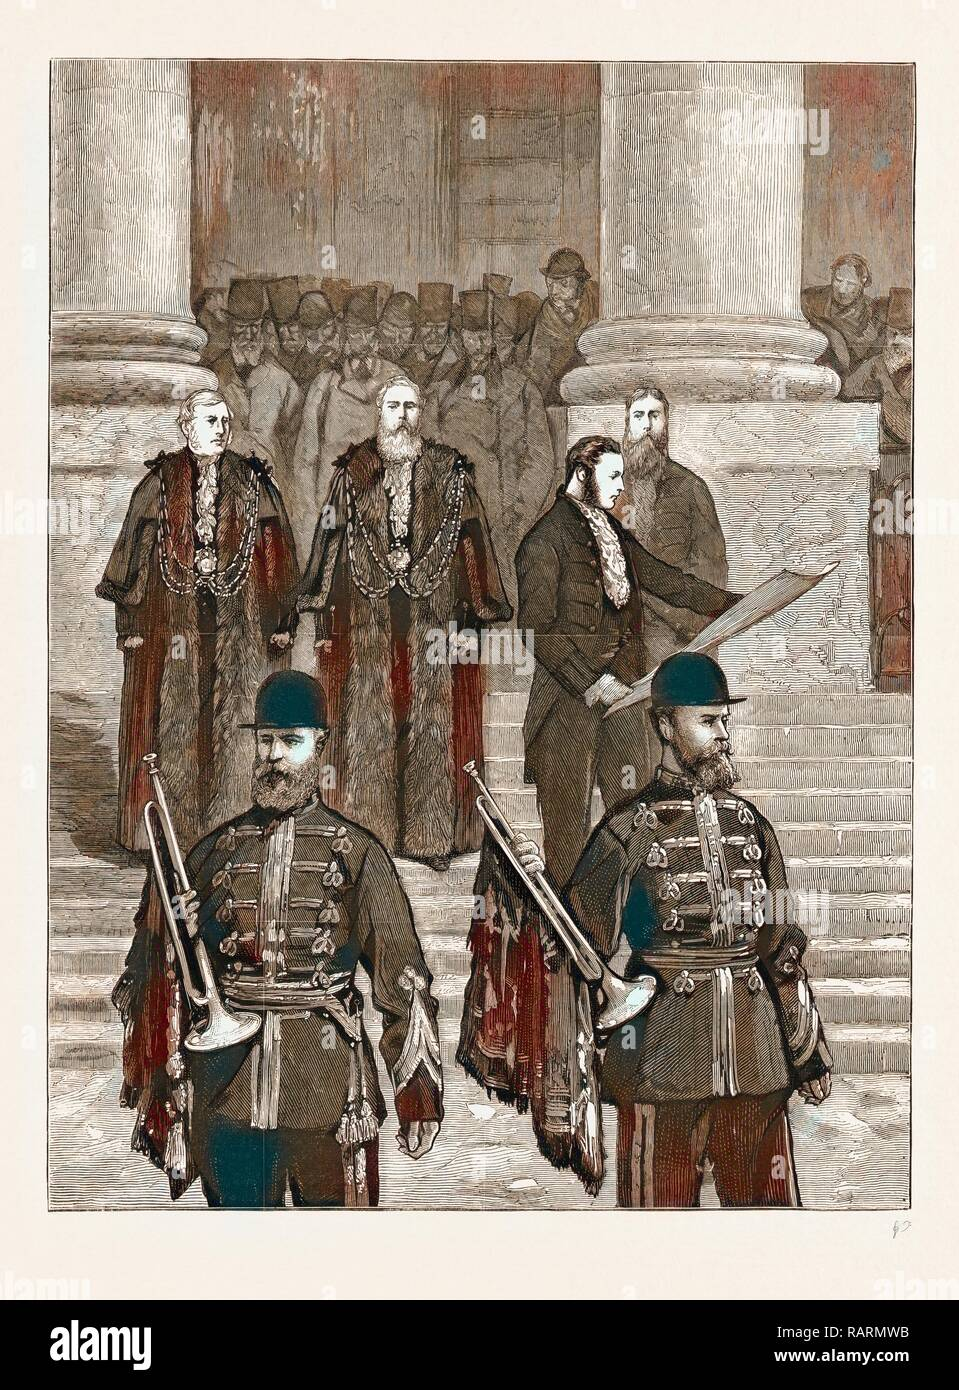 EMPRESS OF INDIA: PROCLAMATION OF THE QUEEN'S NEW TITLE AT THE ROYAL EXCHANGE, 1876. Reimagined by Gibon. Classic art reimagined - Stock Image